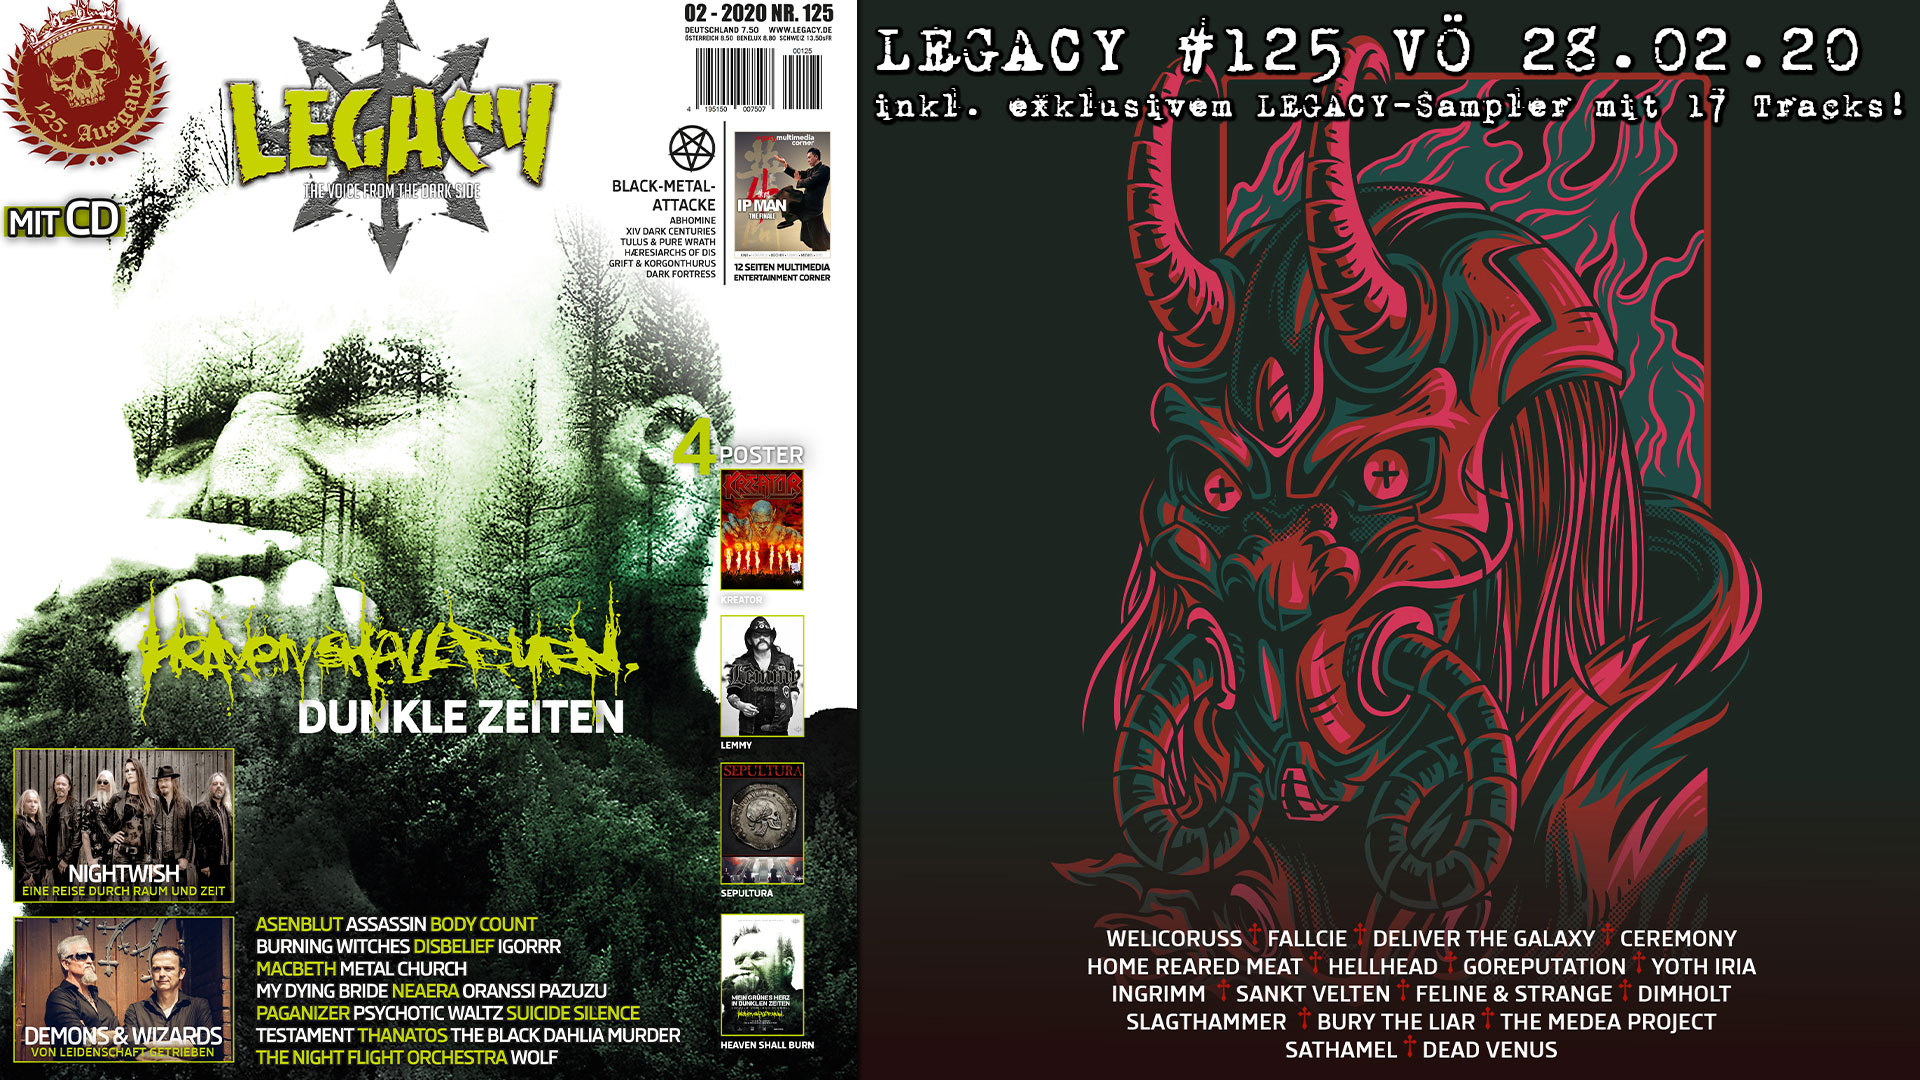 Legacy #125 ist erschienen mit Home Reared Meat Interview